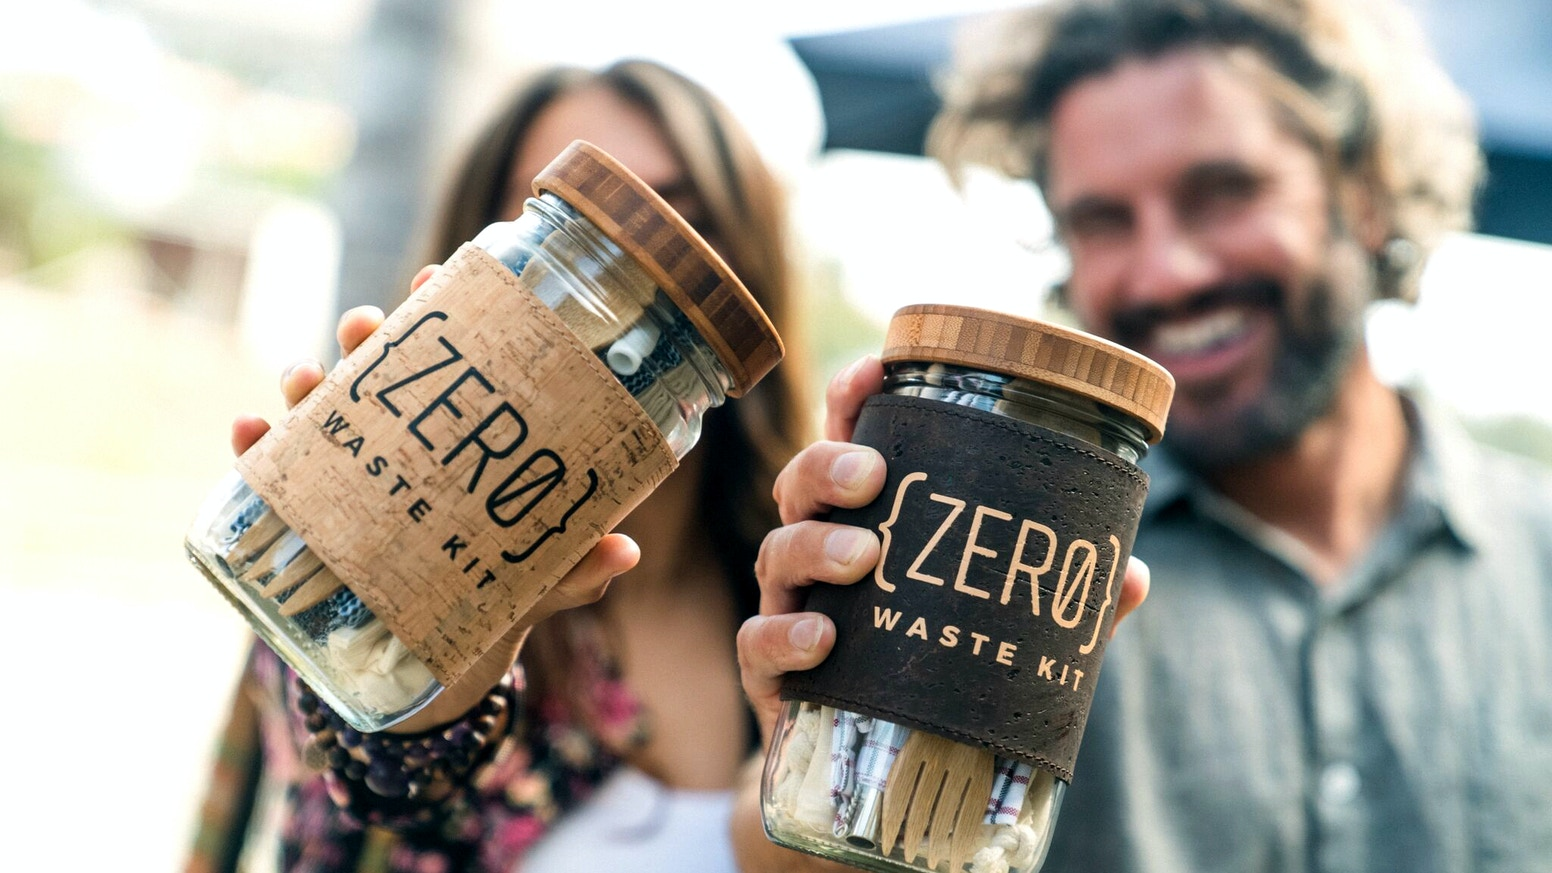 We are on a mission to fight the global waste crisis by empowering people with the tools and convenience they need to reduce their everyday waste. Join the #ZeroWasteBadass movement!